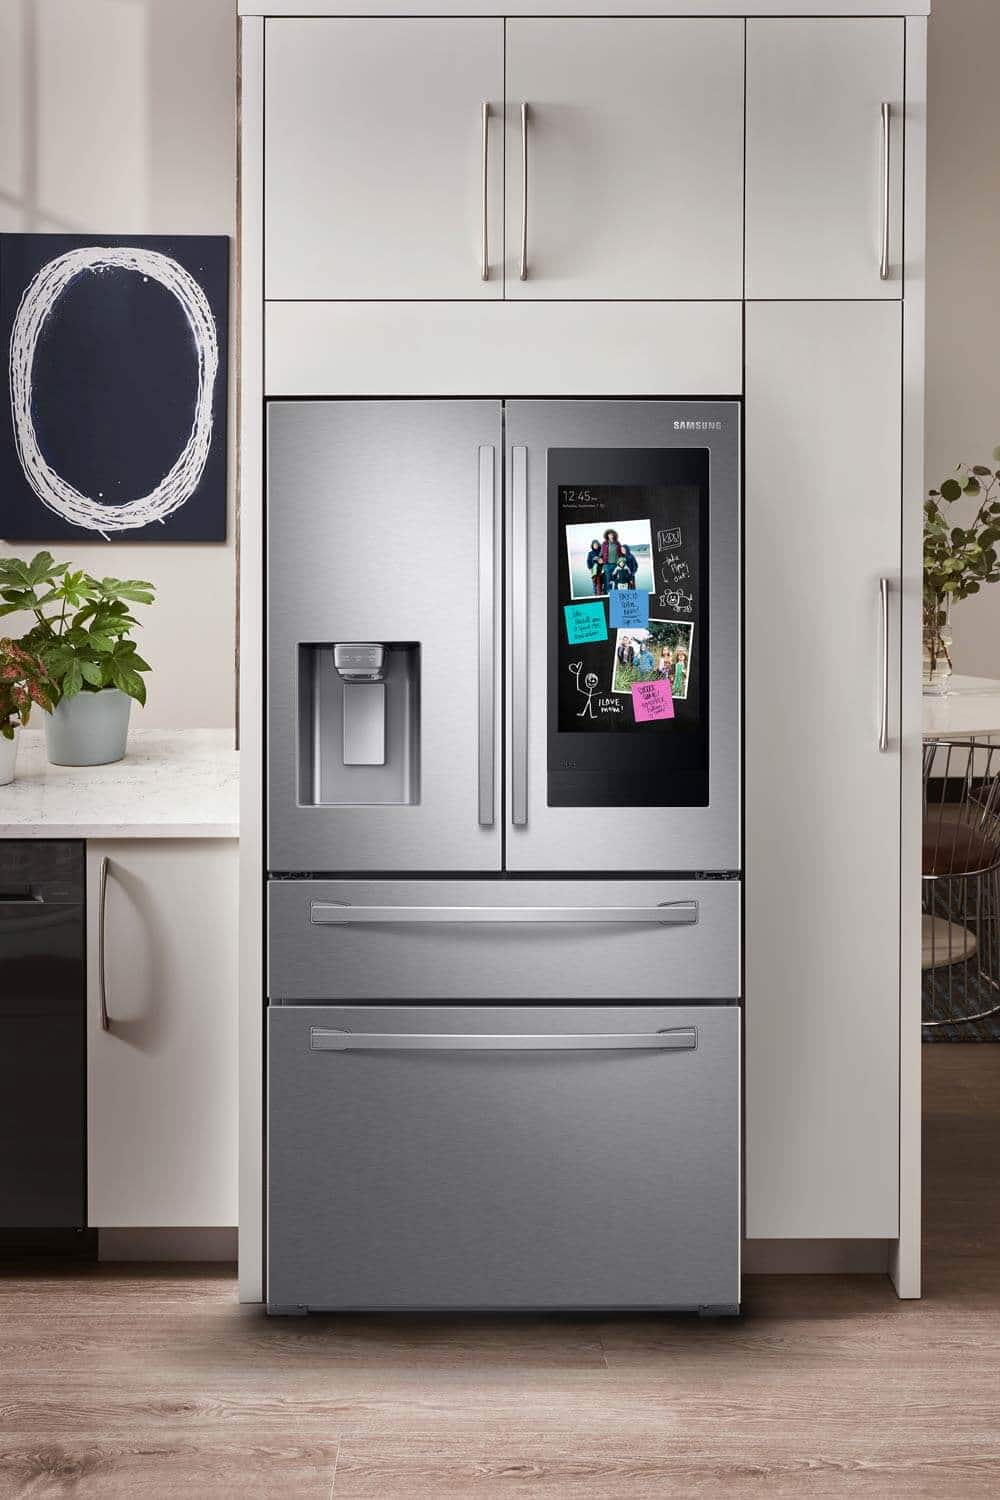 picture of a refrigerator